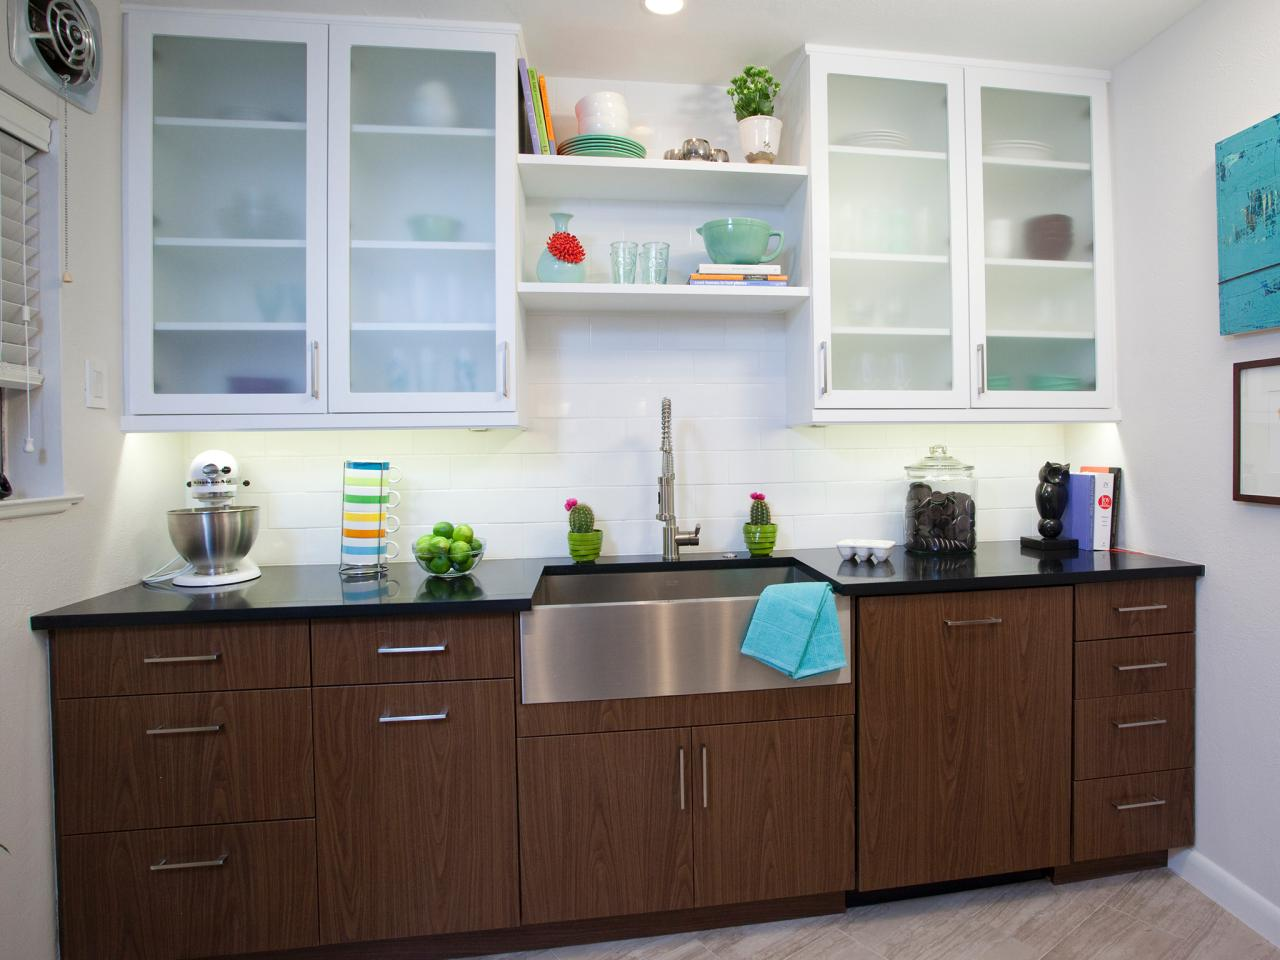 Kitchen cabinet design pictures ideas tips from hgtv for Kitchen cabinet styles